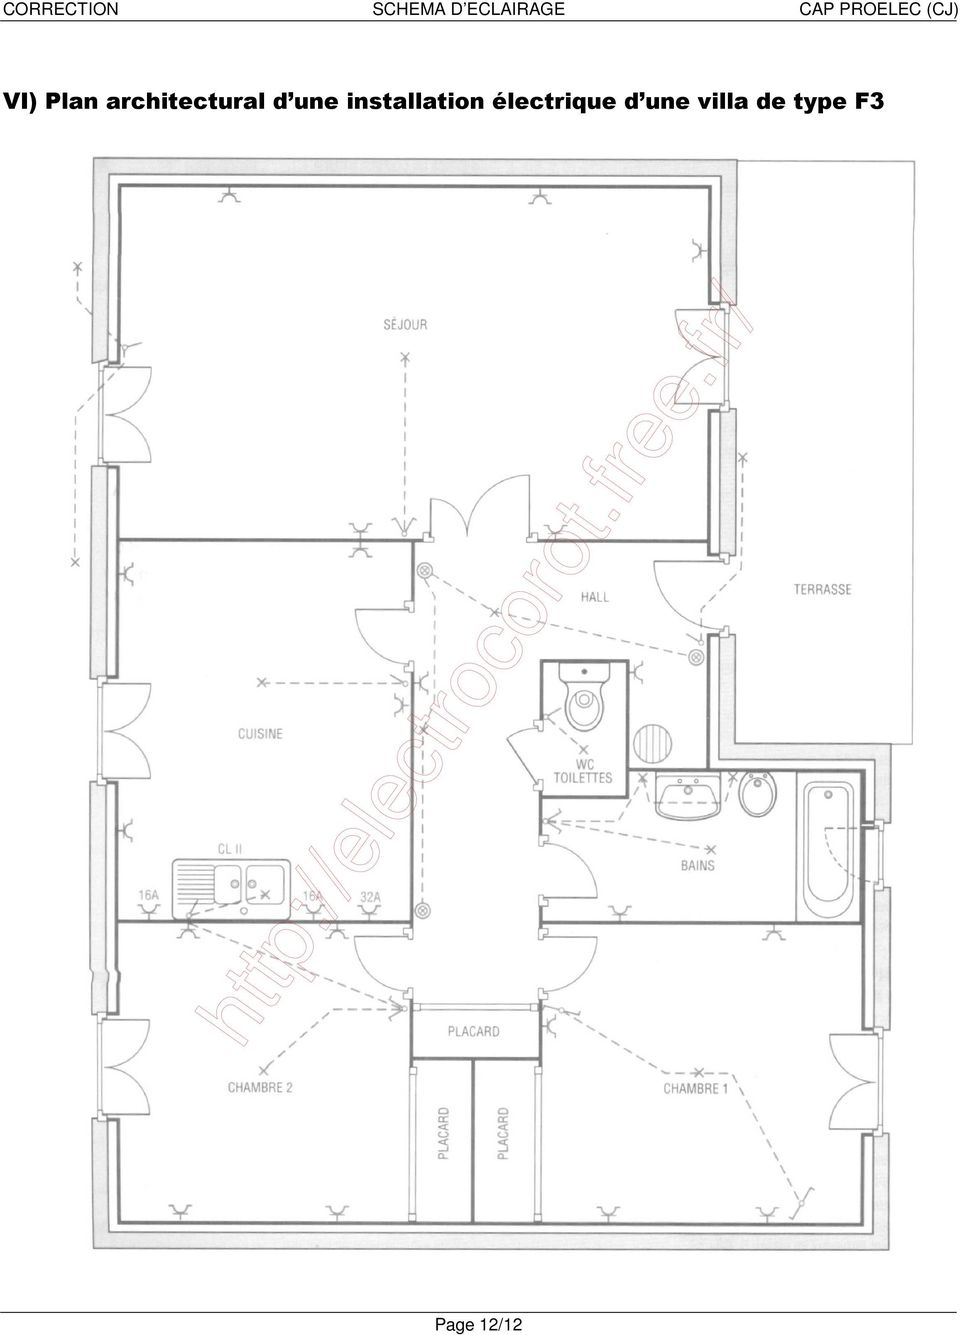 correction schema d eclairage cap proelec cj pdf. Black Bedroom Furniture Sets. Home Design Ideas